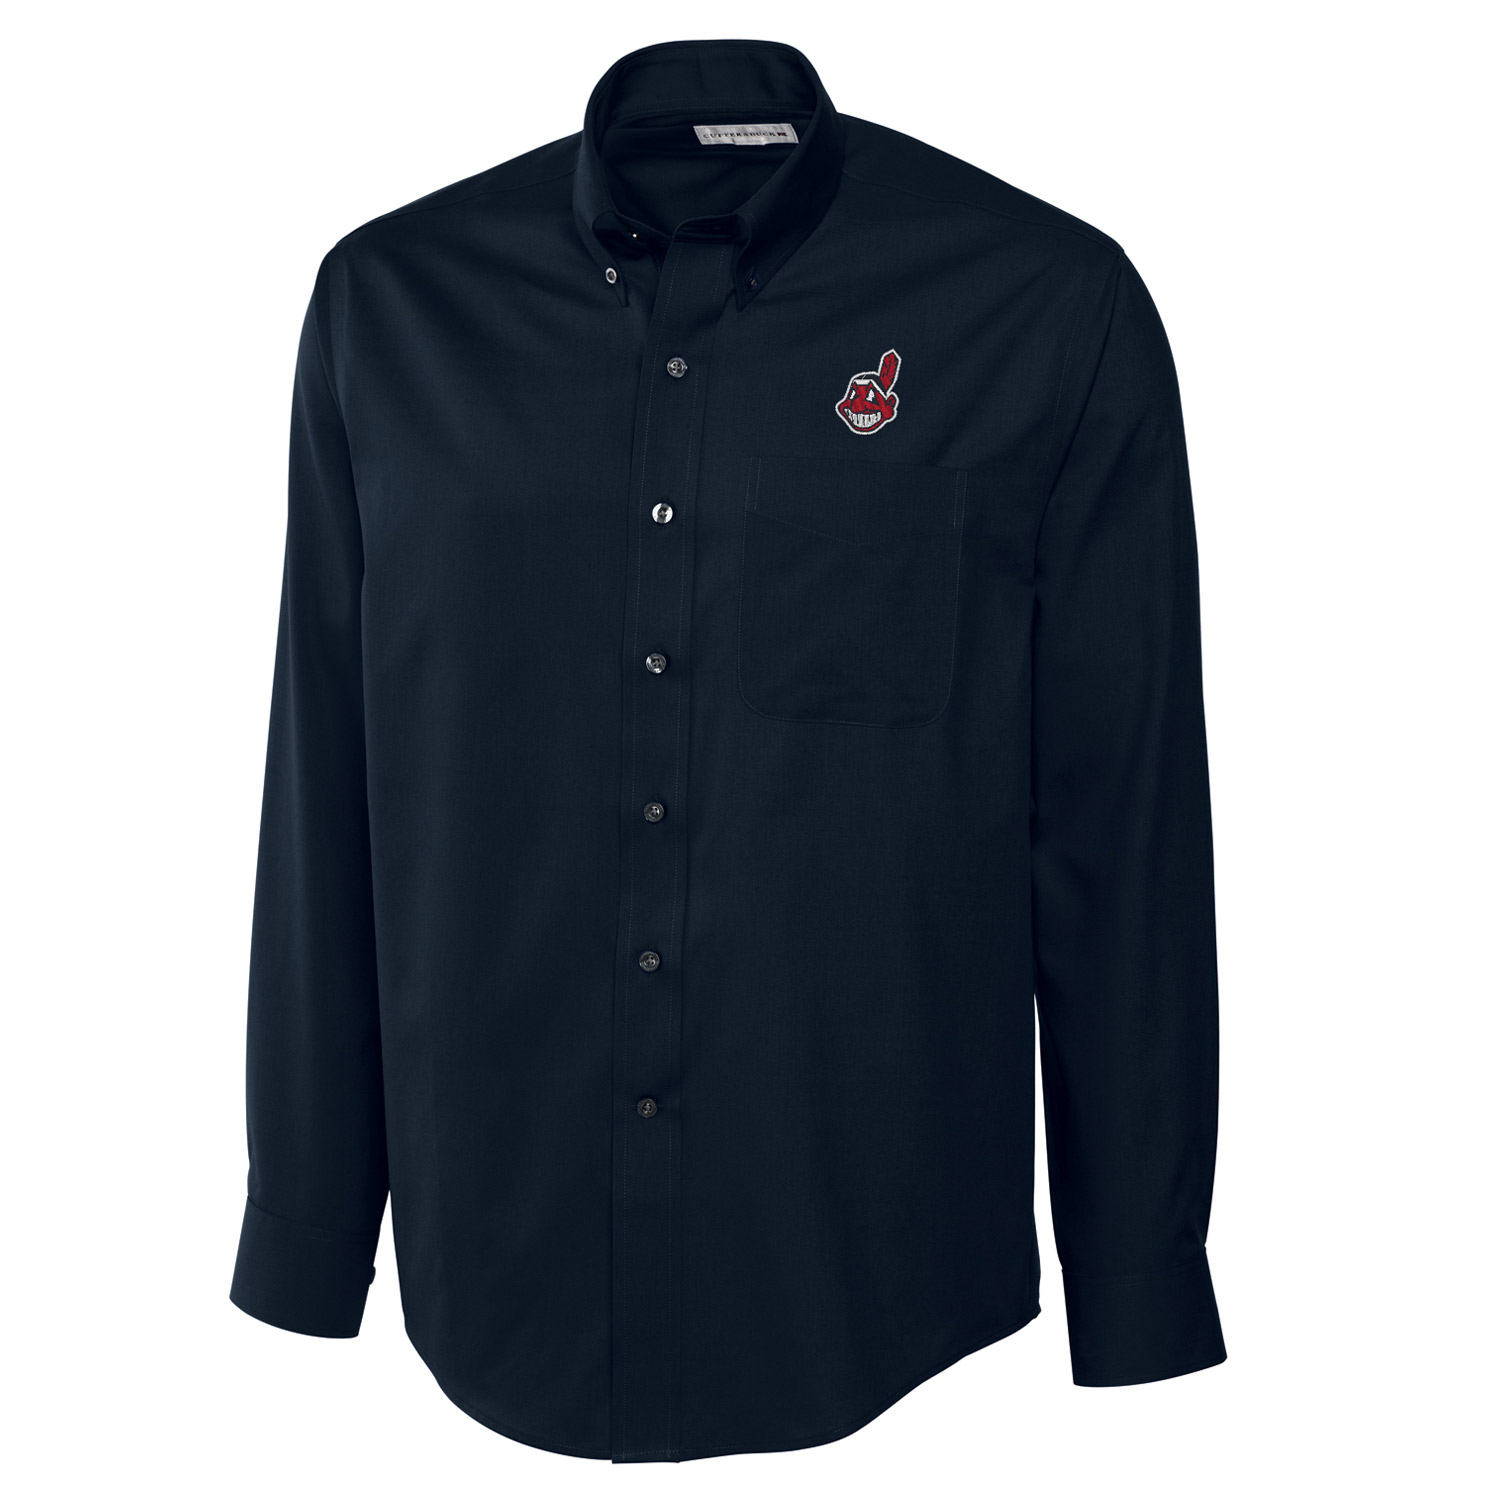 Cleveland Indians Cutter & Buck Big & Tall Epic Easy Care Fine Twill Long Sleeve Shirt - Navy